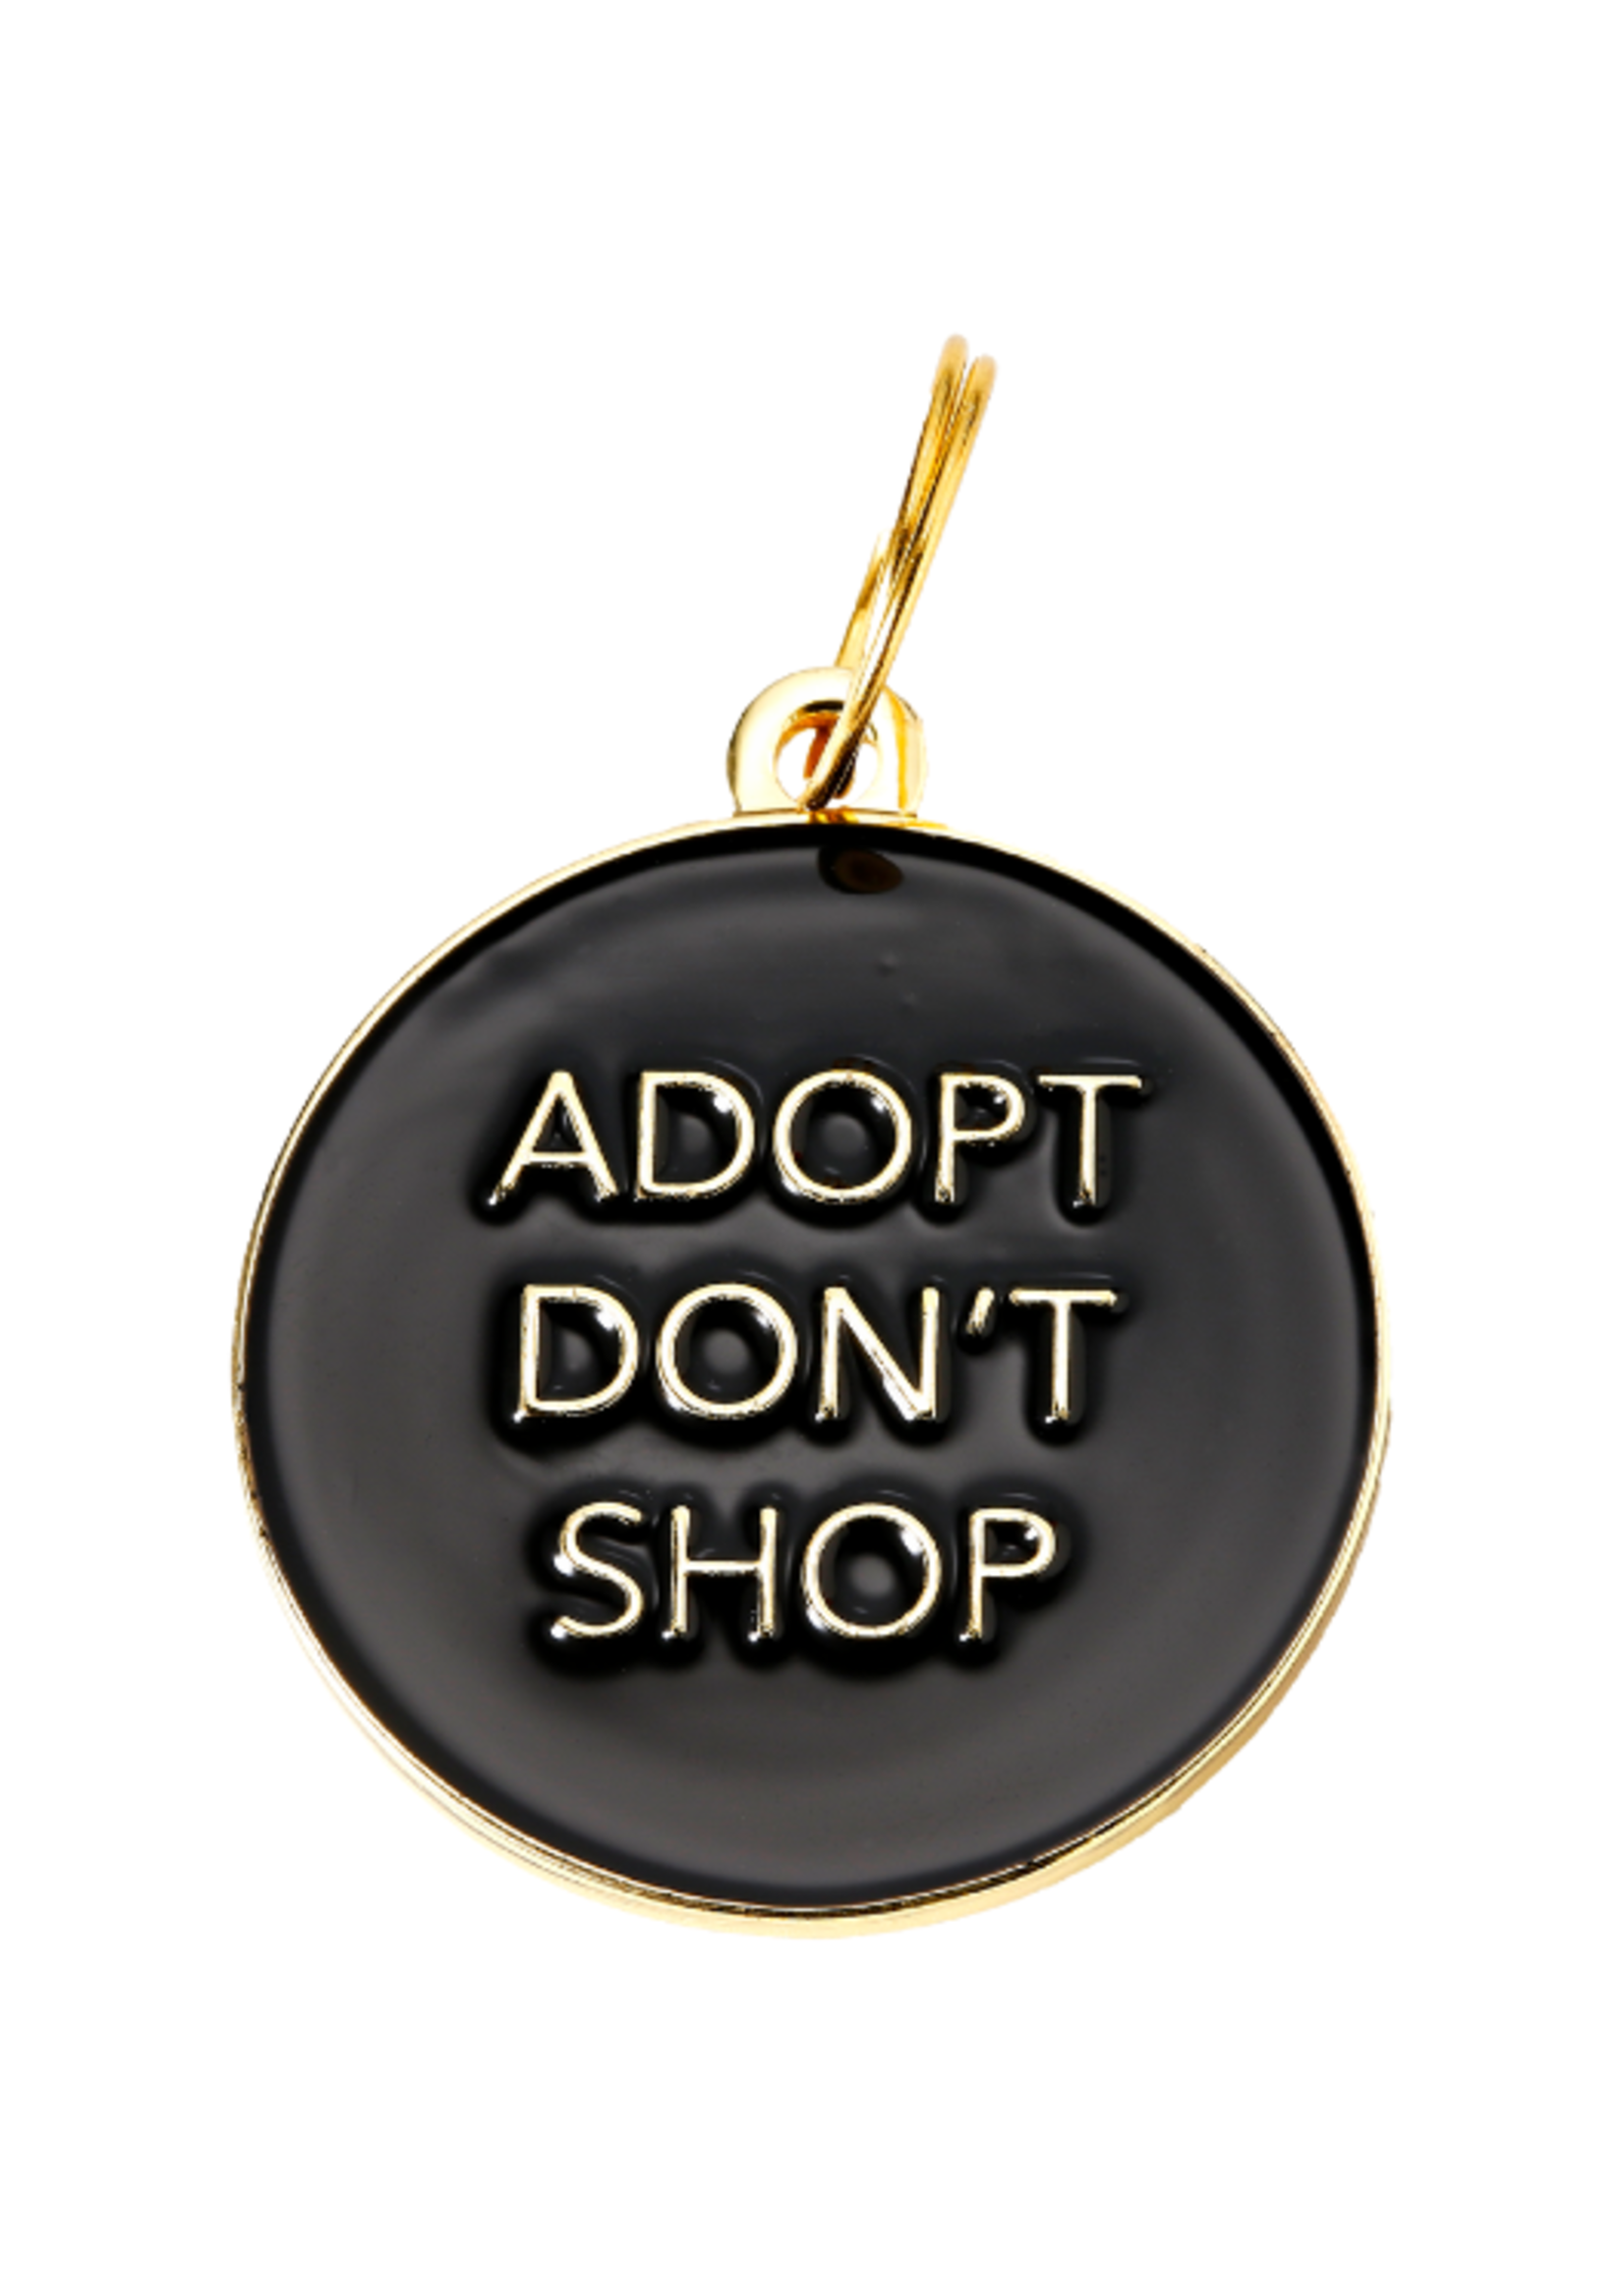 Two Tails Pet Company Adopt Don't Shop